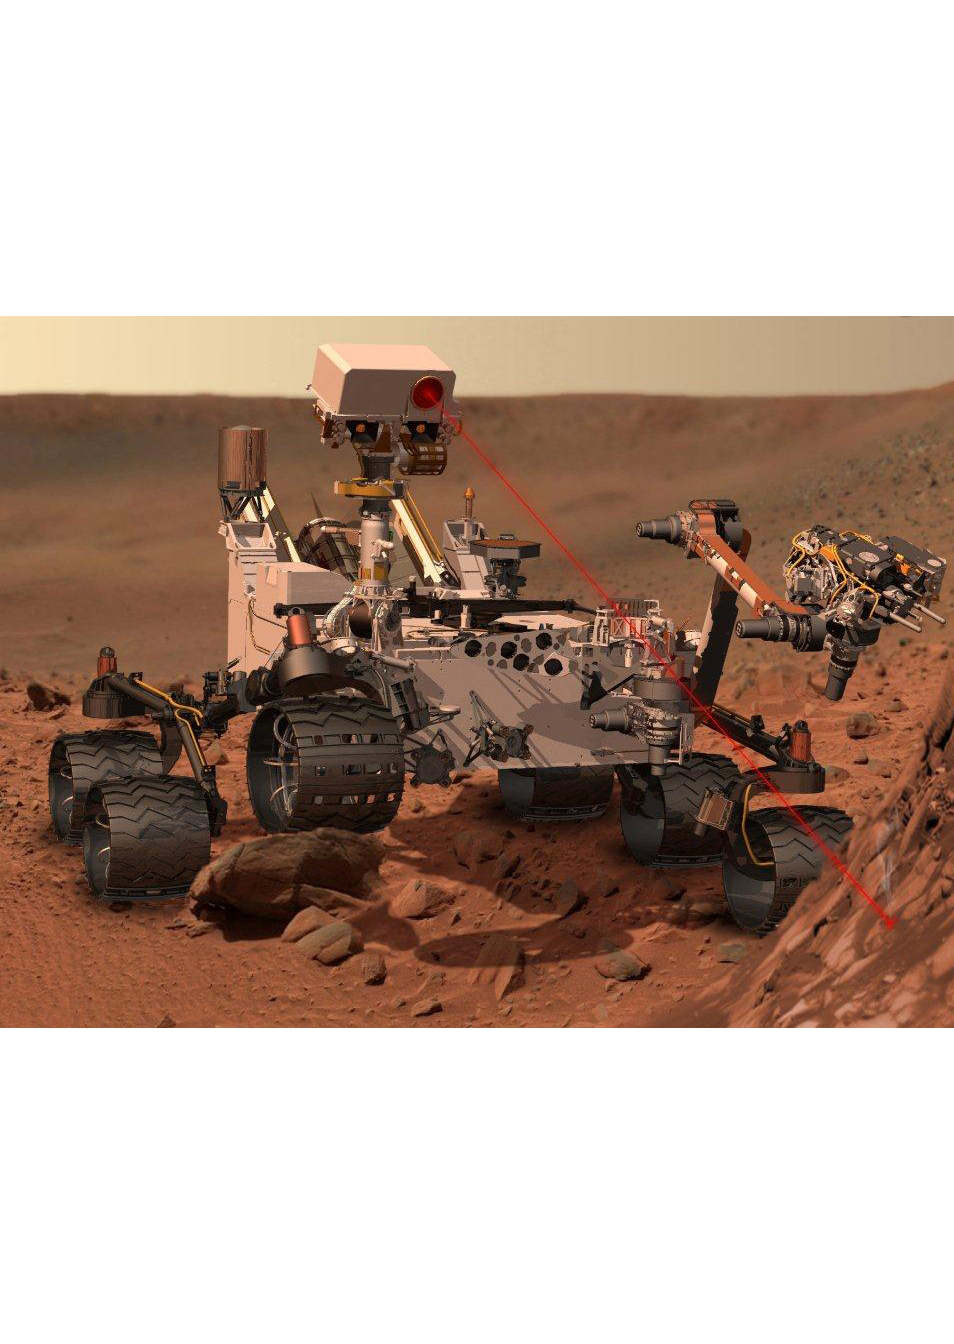 GGB PTFE plain bearings on mars thanks to their durable nature